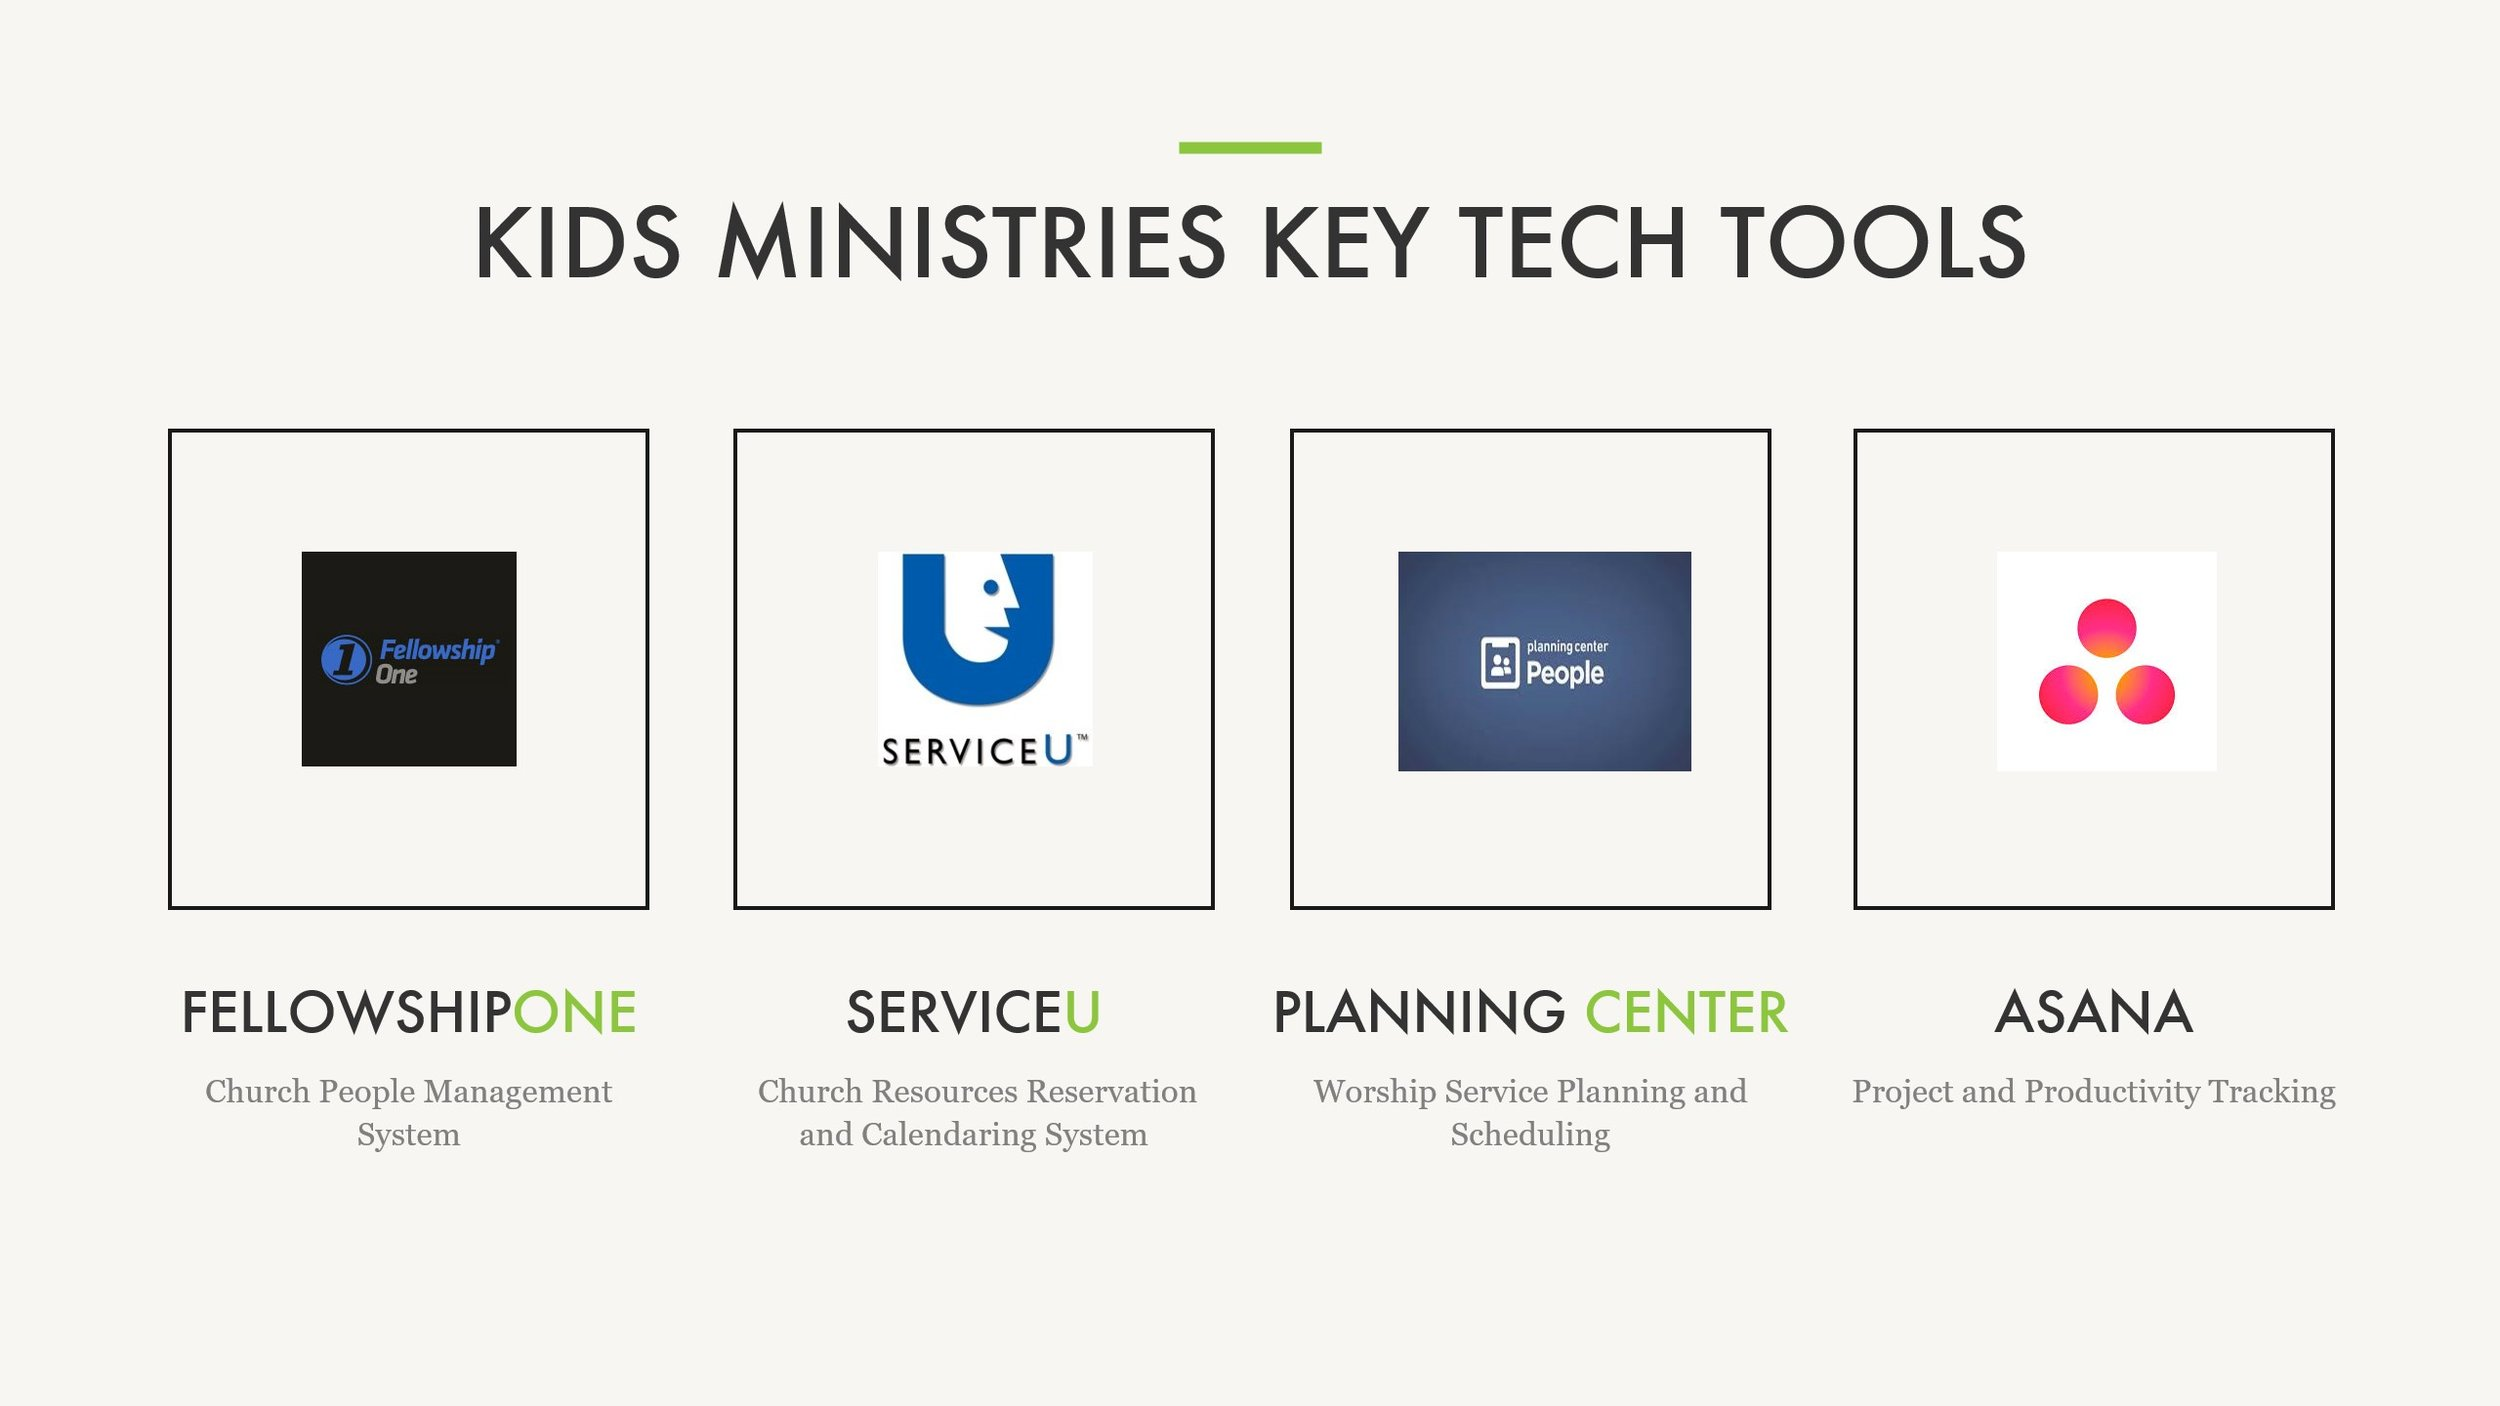 Here is a slide example from our Kids Ministries Department Training Plan listing the tools we use. The tools listed in this plan are the same for each ministry department.